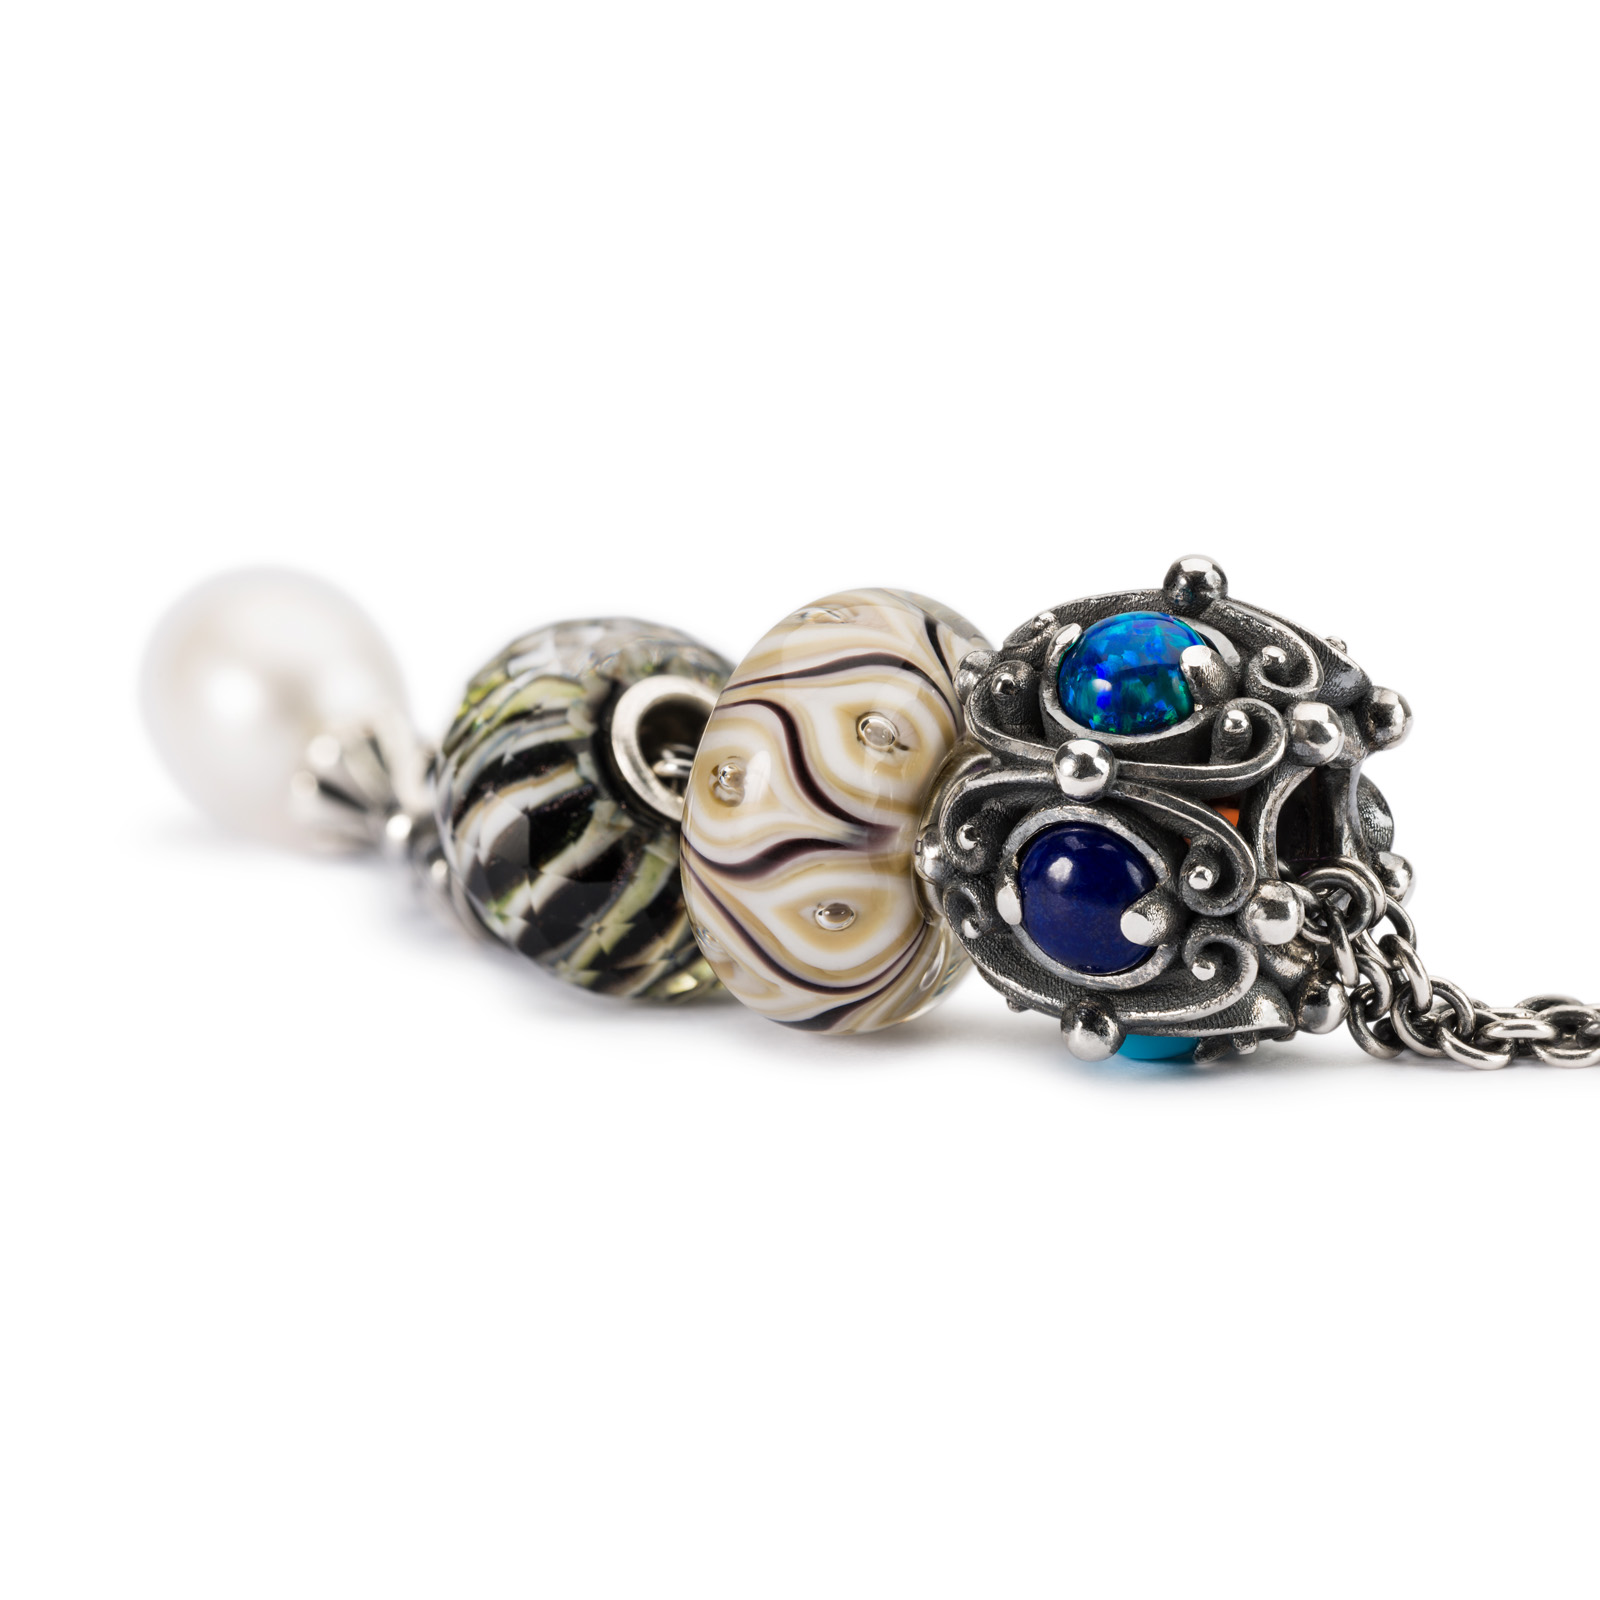 Trollbeads - New Wisdom Fantasy Necklace Close Up